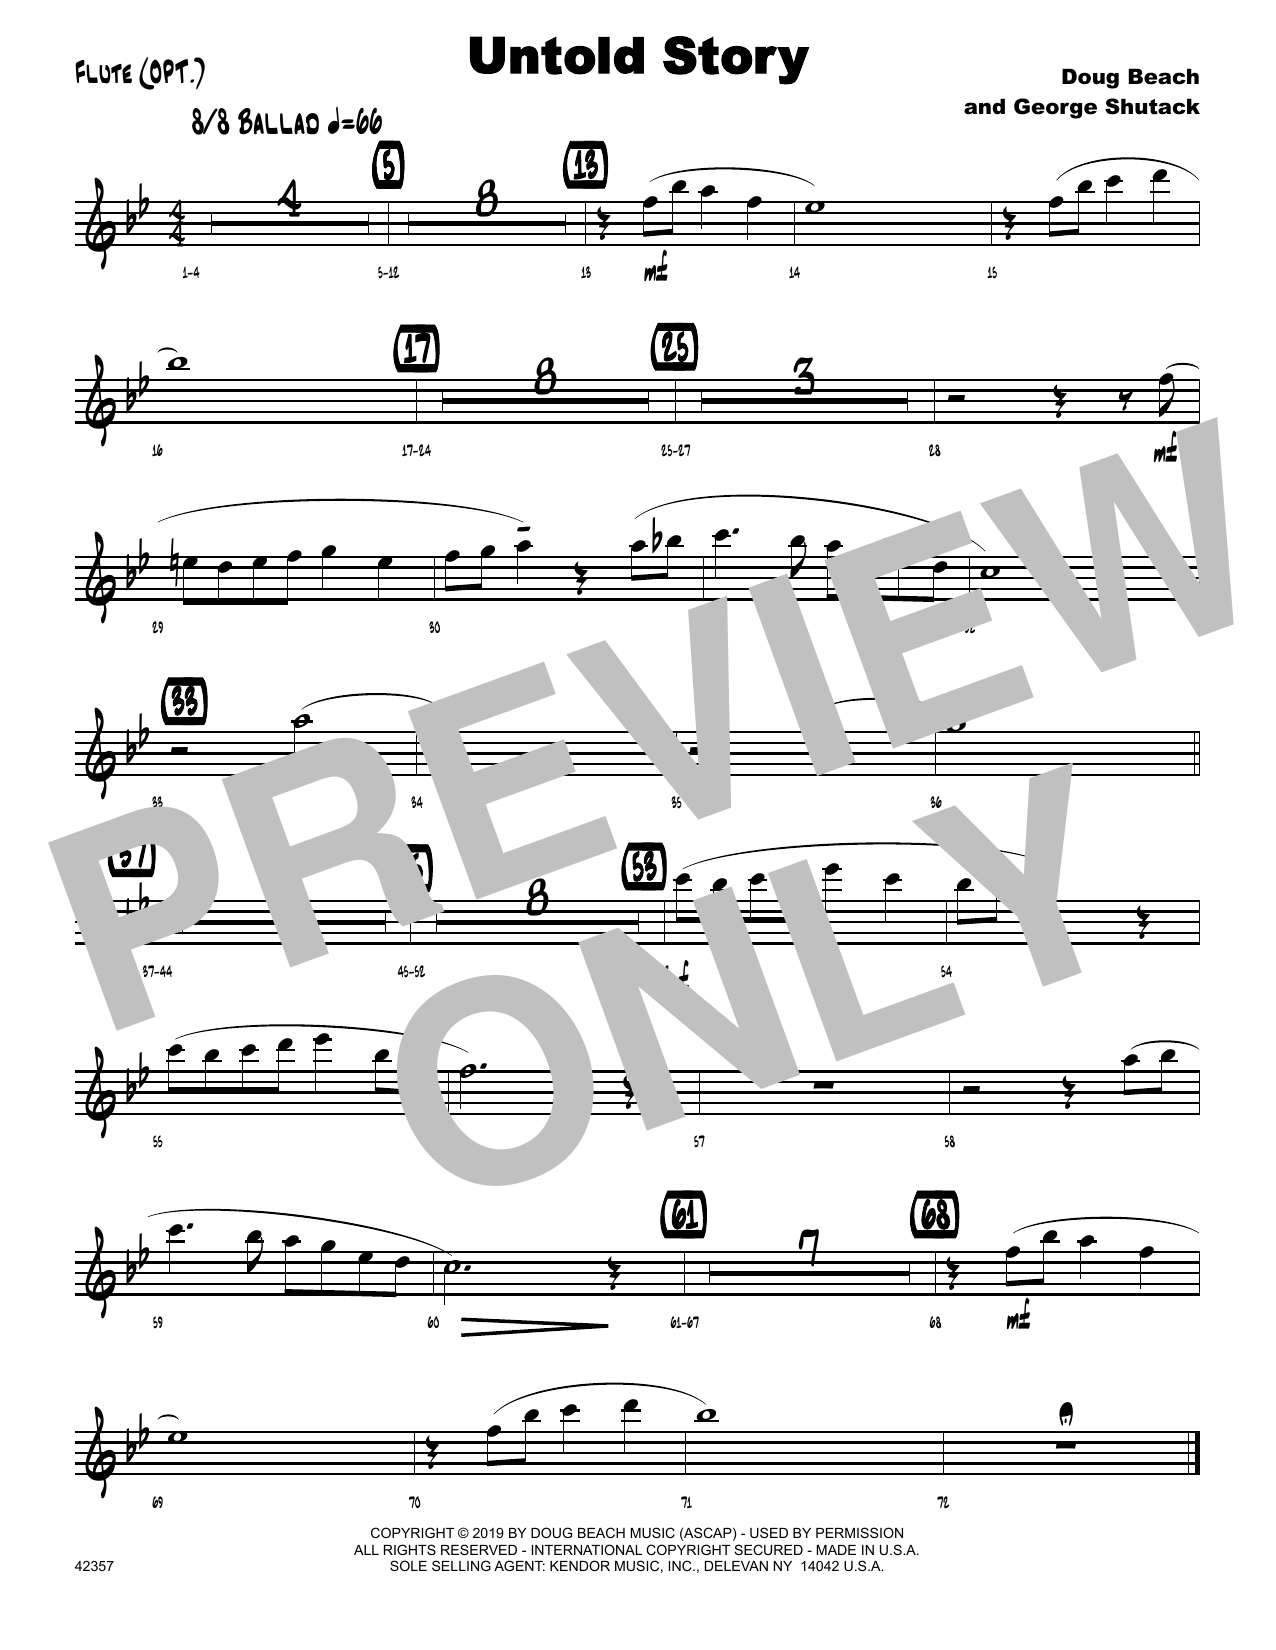 Doug Beach & George Shutack Untold Story - Flute sheet music notes and chords. Download Printable PDF.